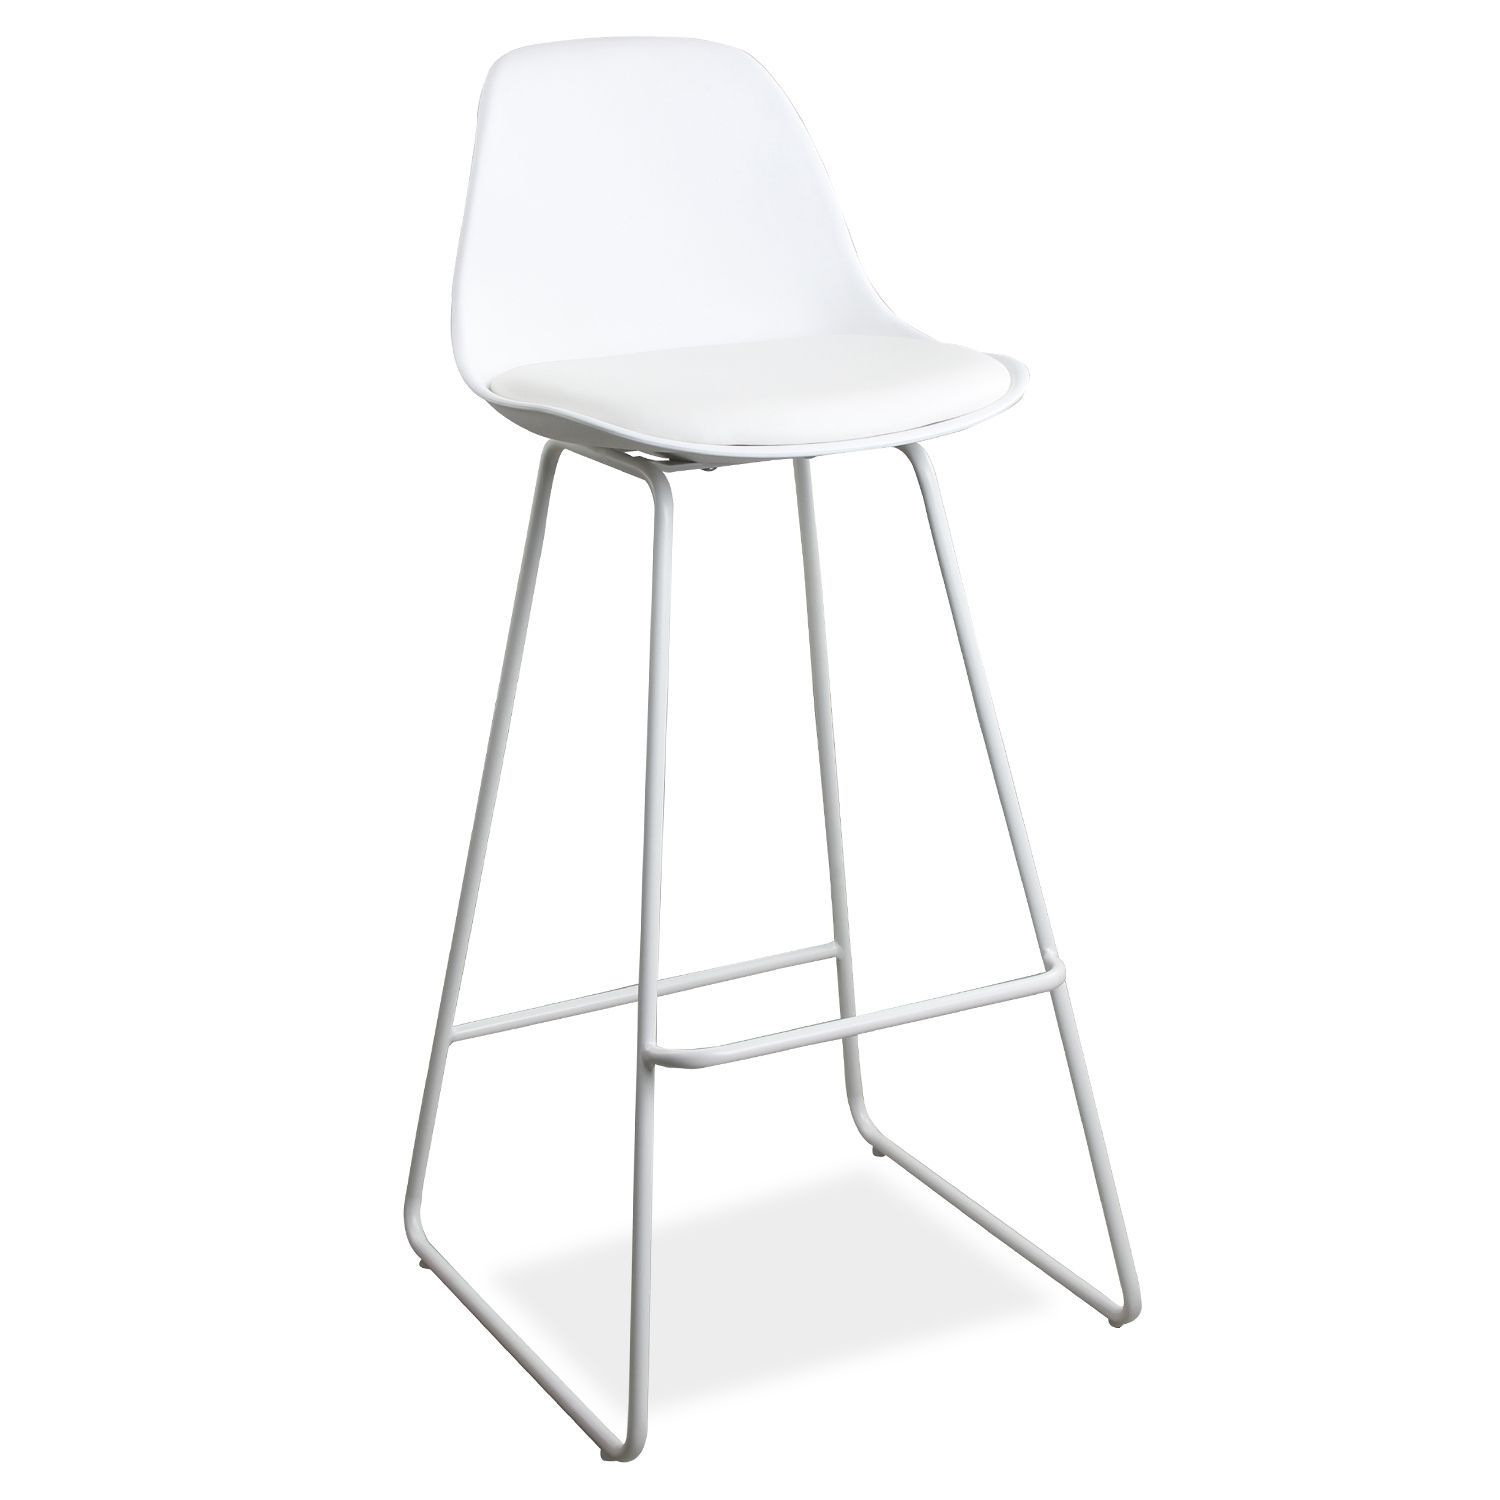 Best Of White and Black Bar Stools